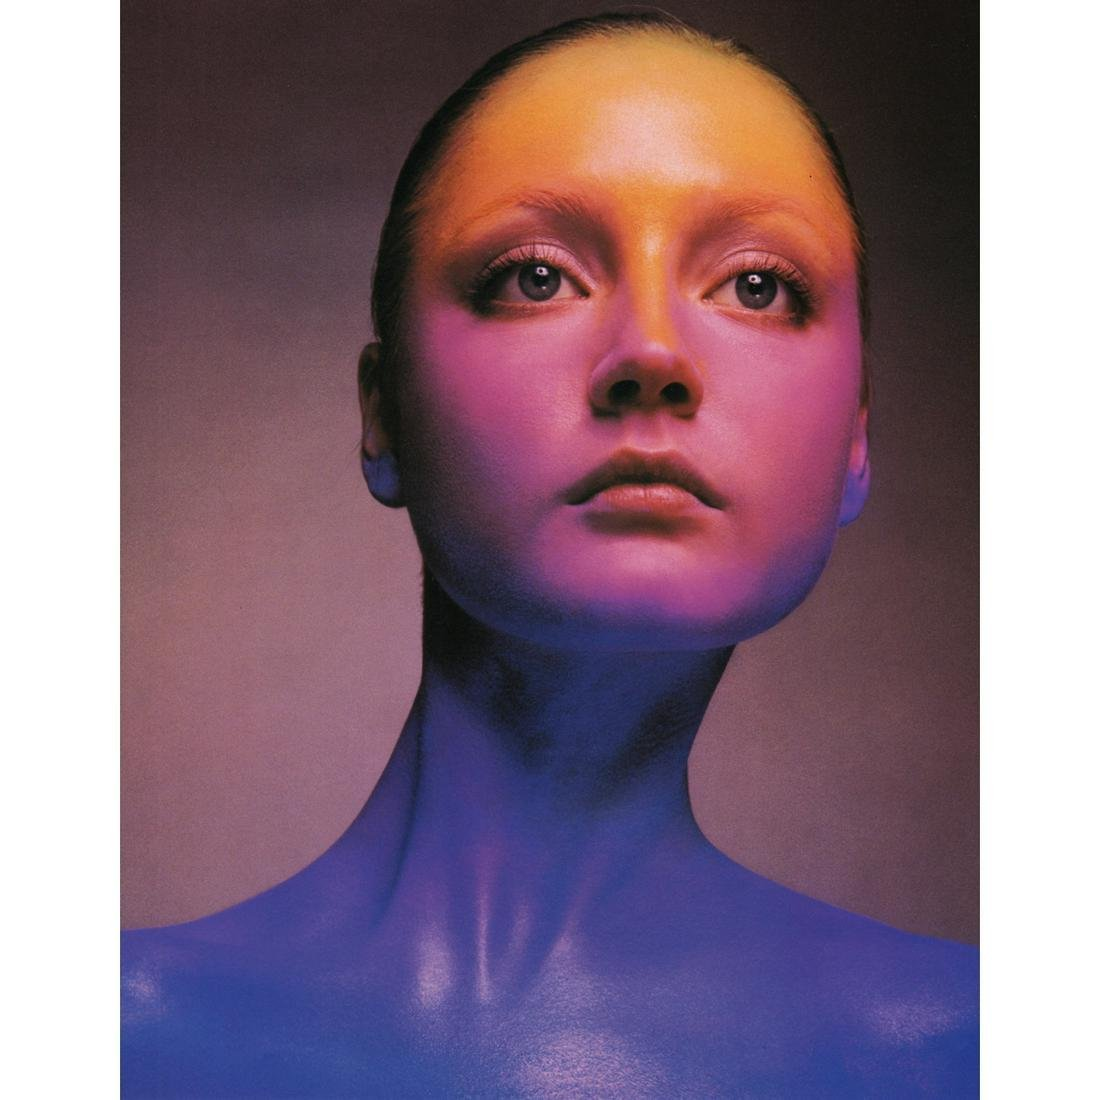 RICHARD AVEDON - Ingrid Boulting, model, Paris